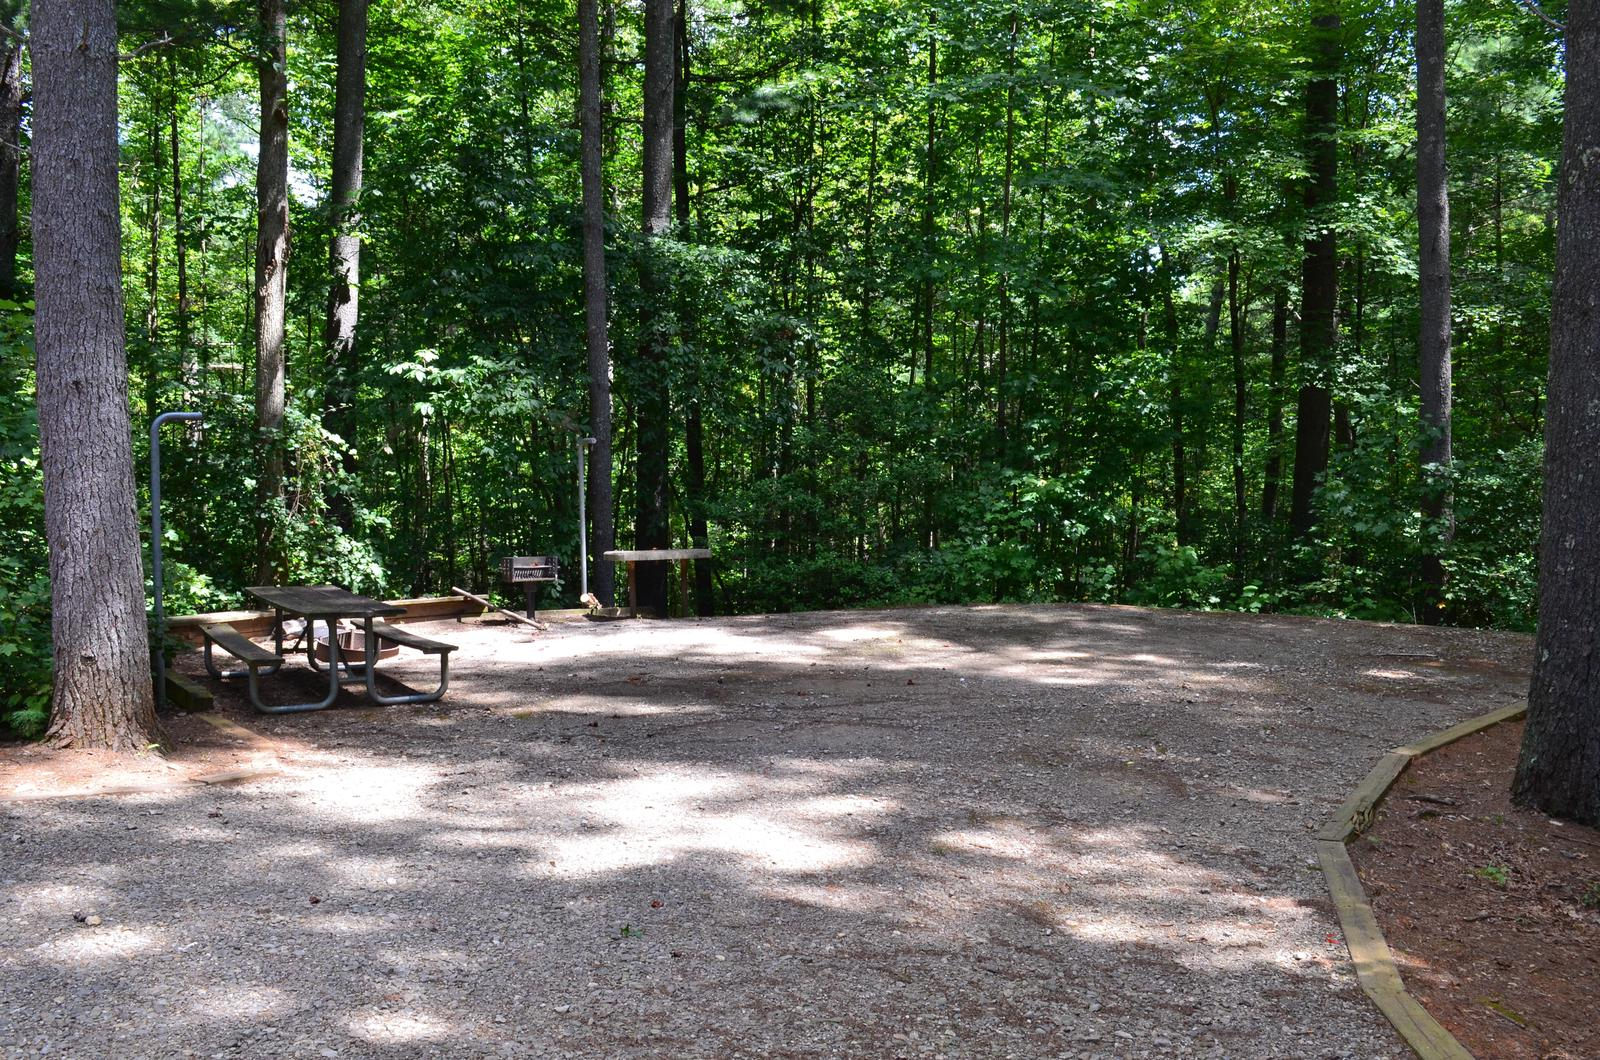 Flat gravel site with table, fire pit, grill, surrounded by trees Gravel site with table, fire pit, grill